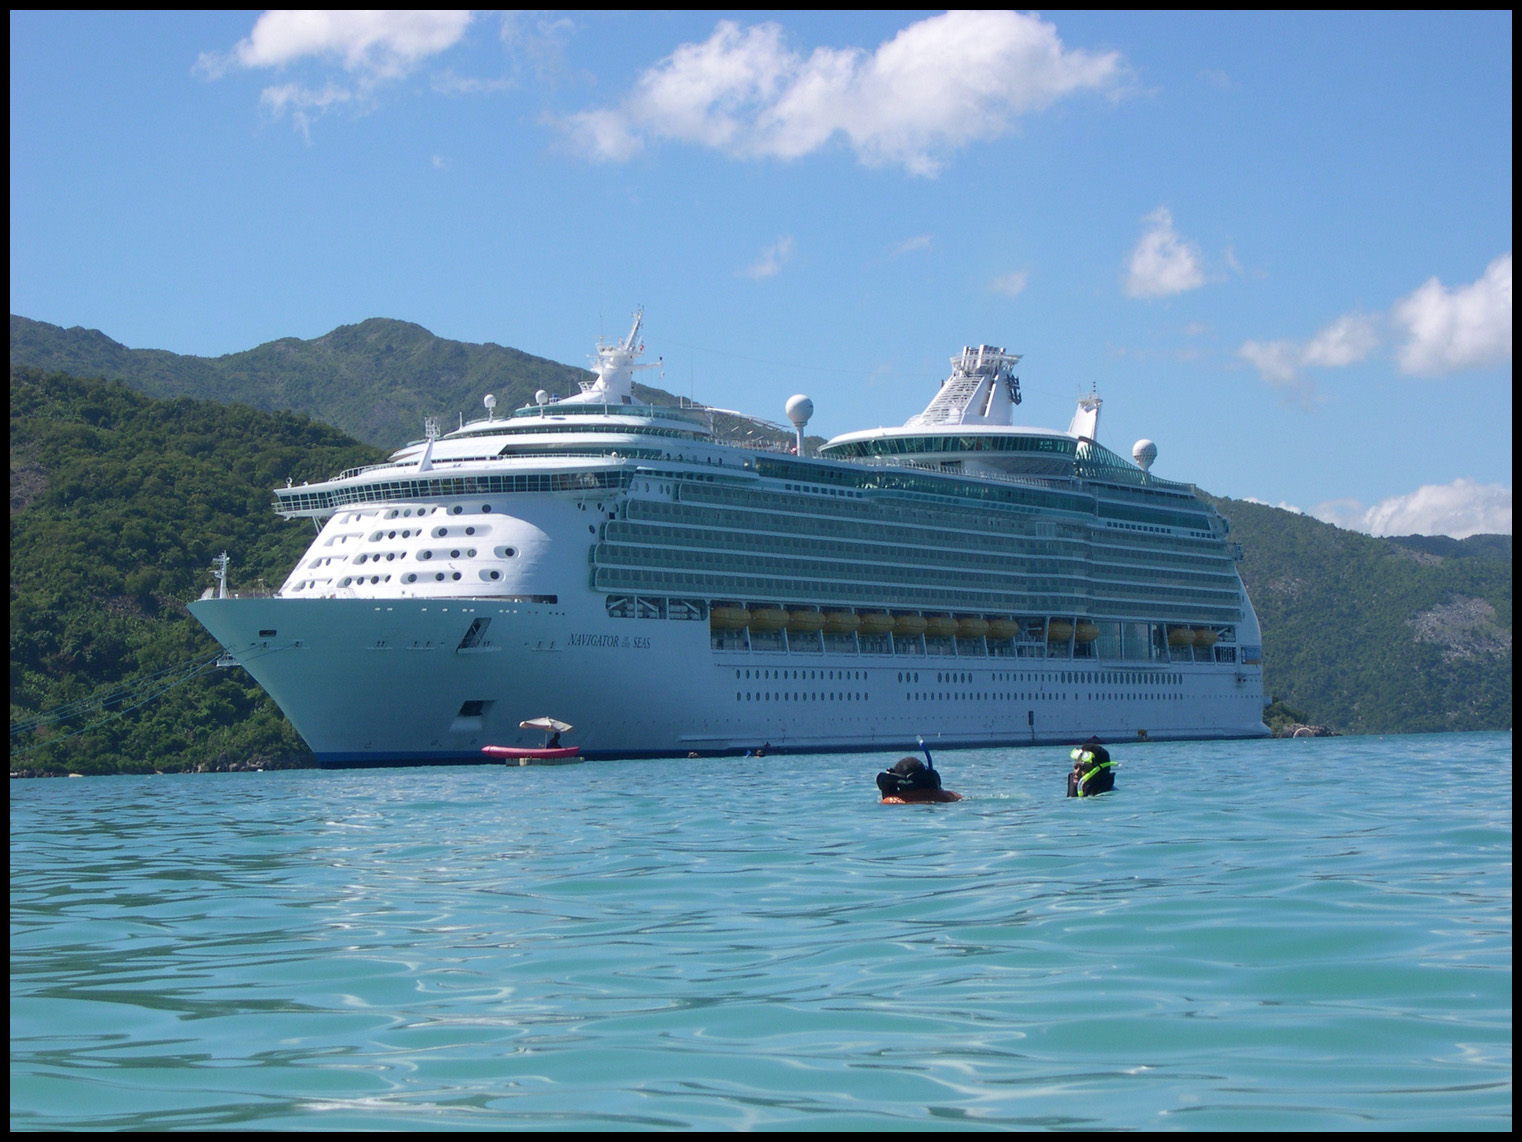 Another shot of the 'Navigator of the Seas'.